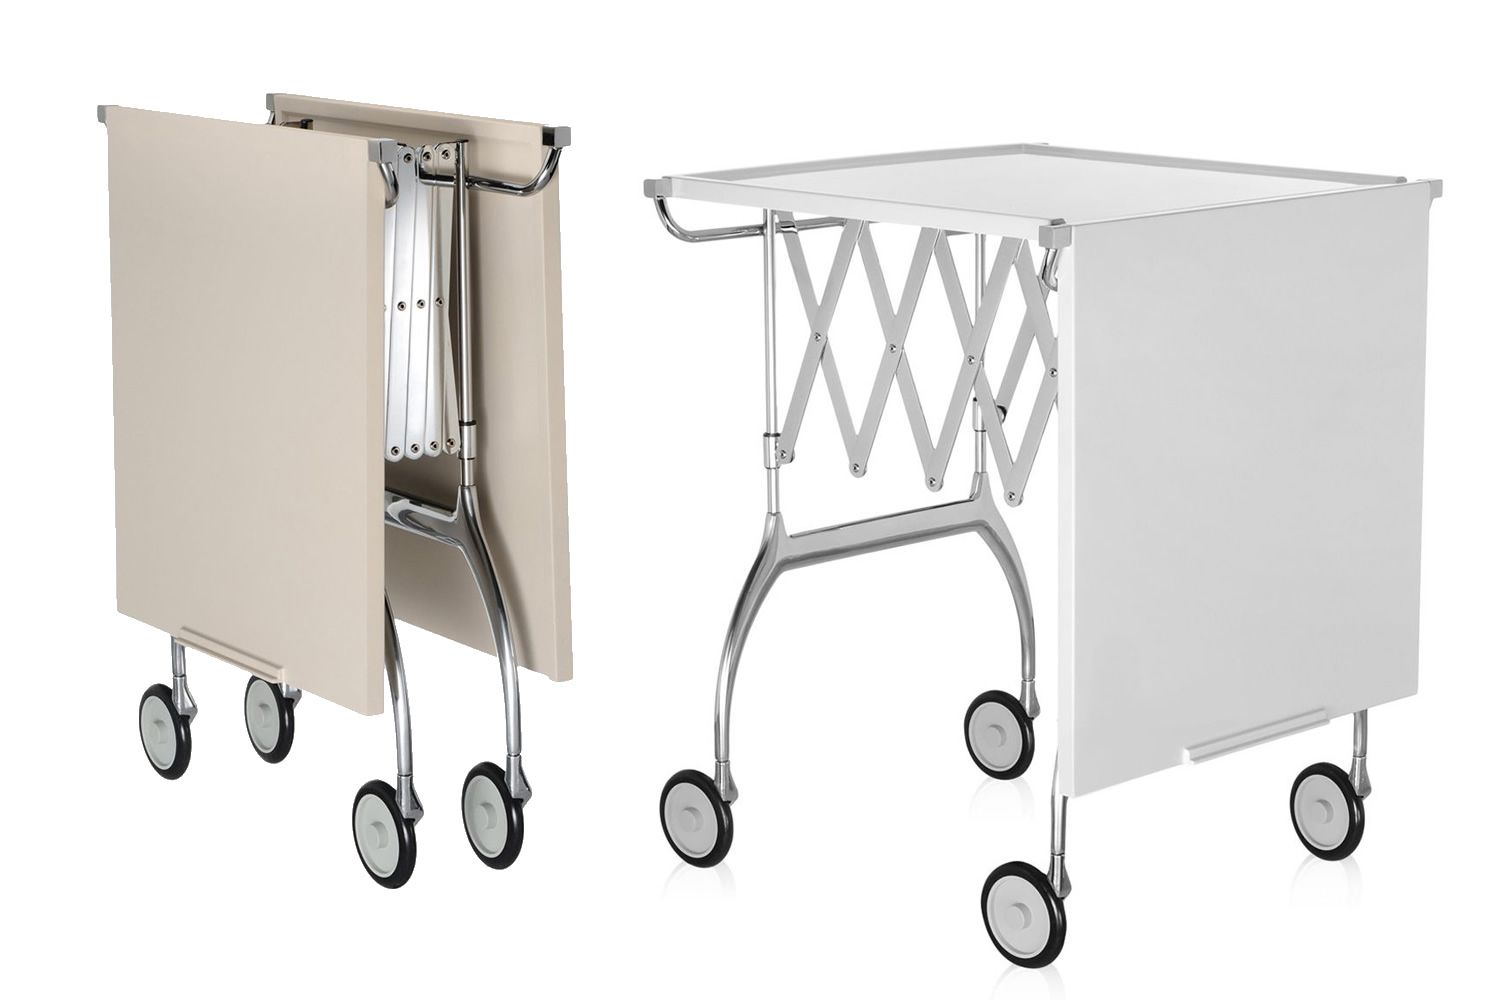 Kartell folding trolley, color cream and white